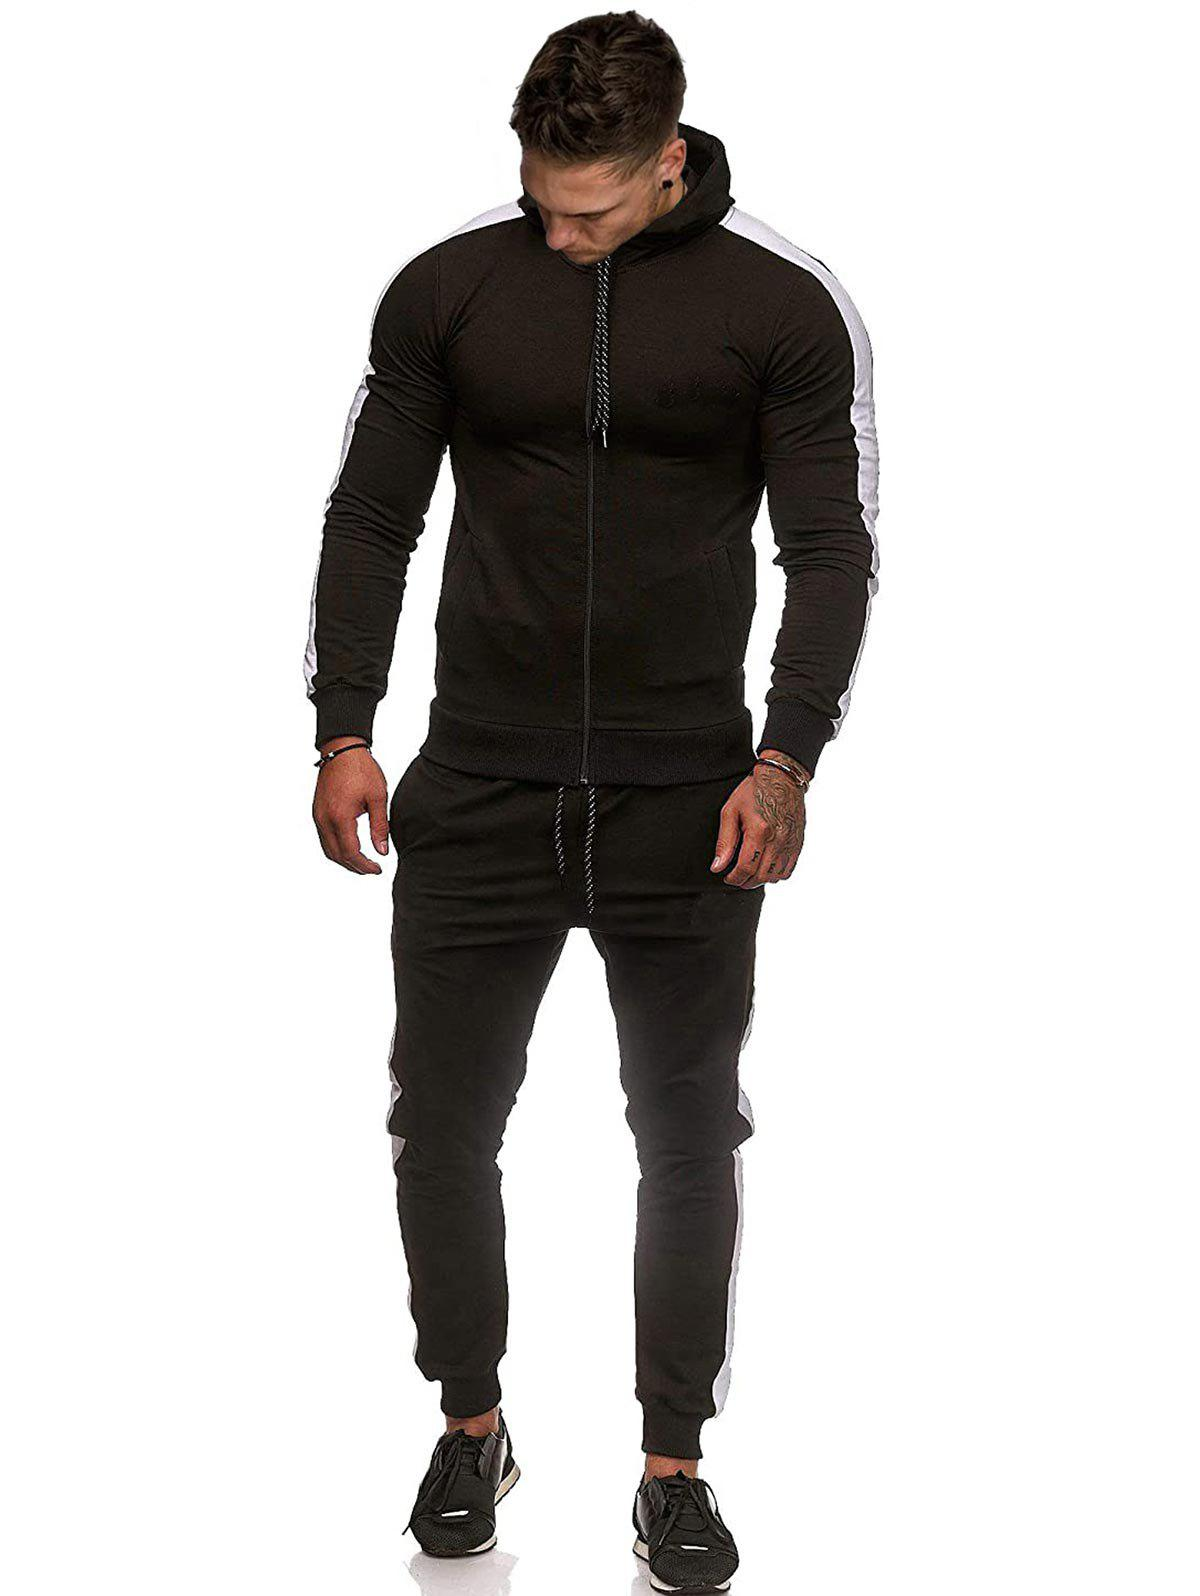 Outfits Contrast Tape Zip Up Hoodie and Pants Two Piece Set